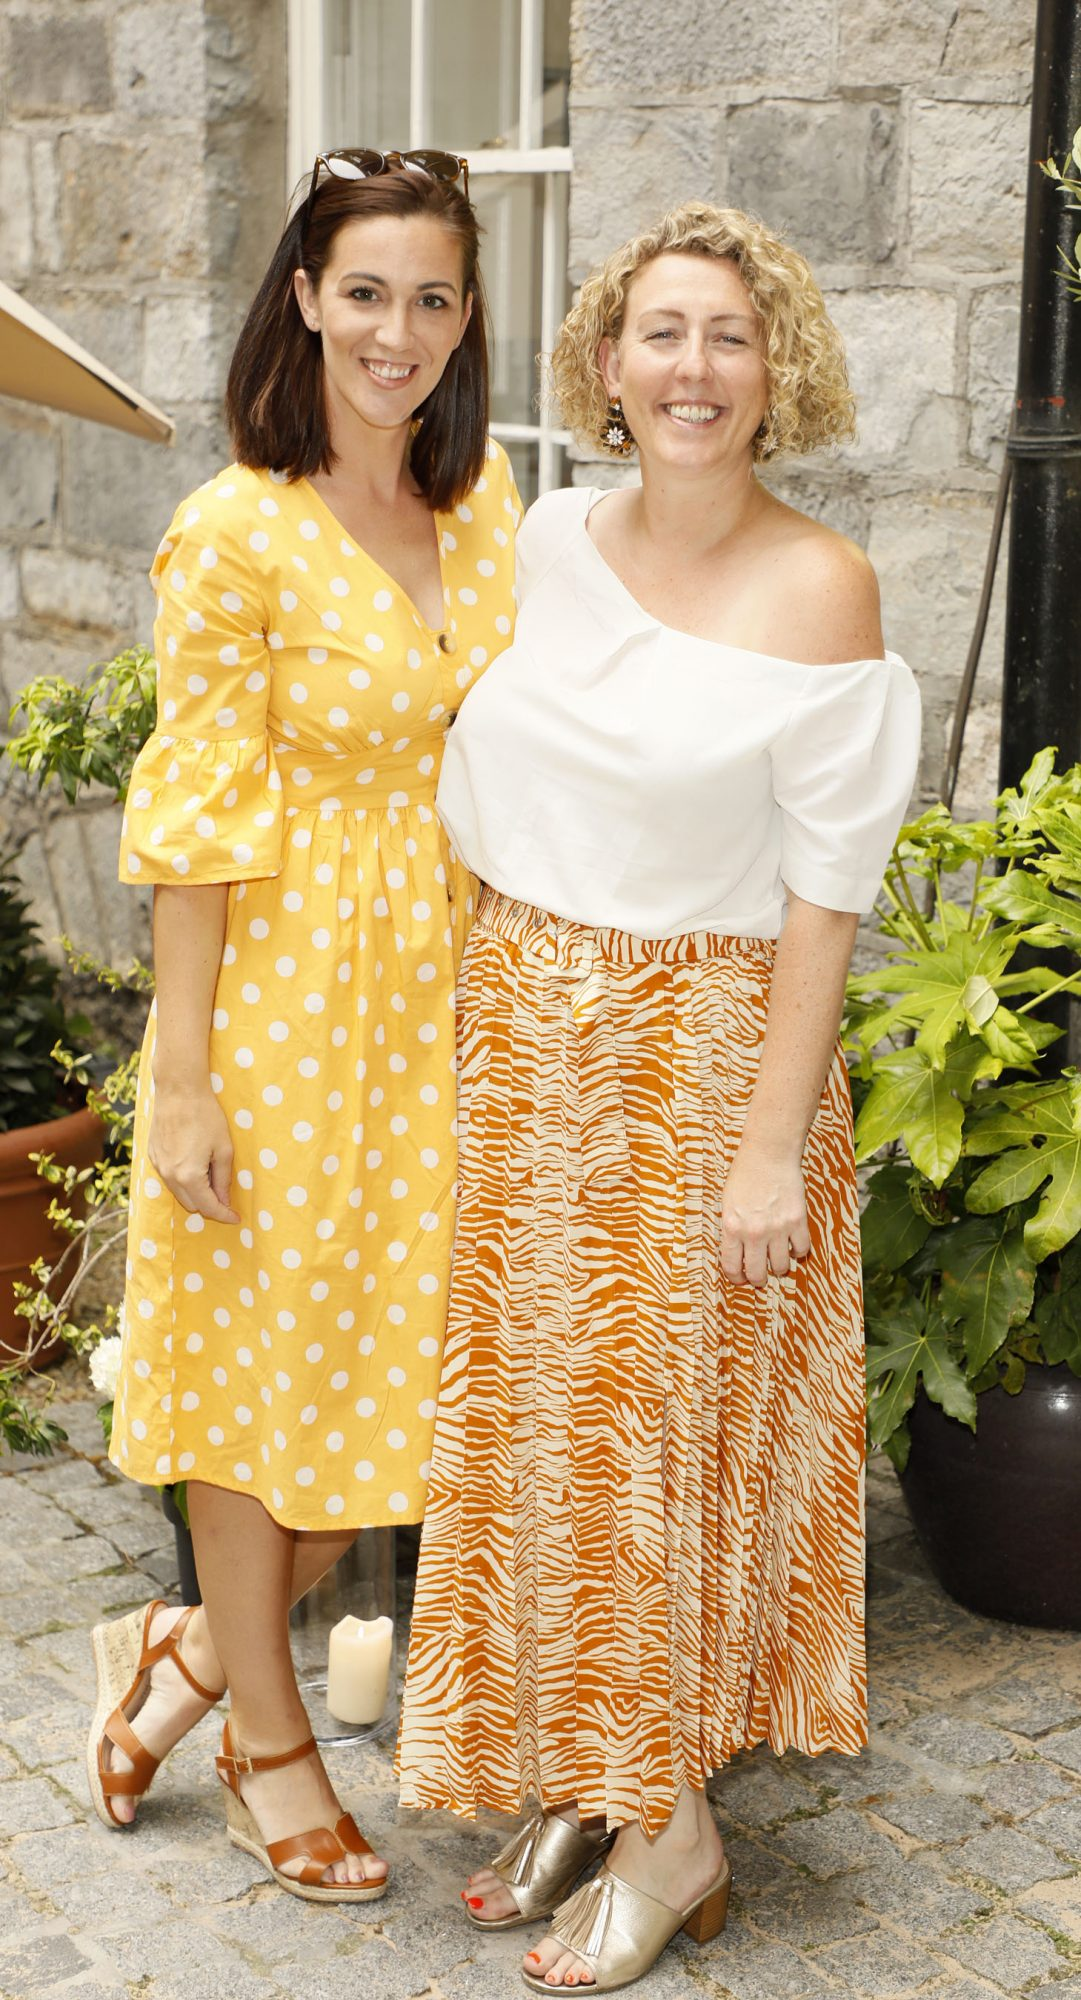 Suzanne Kane and Aisling O'Toole at the Centra 'Wines We Love' event in Dublin. Photo: Kieran Harnett